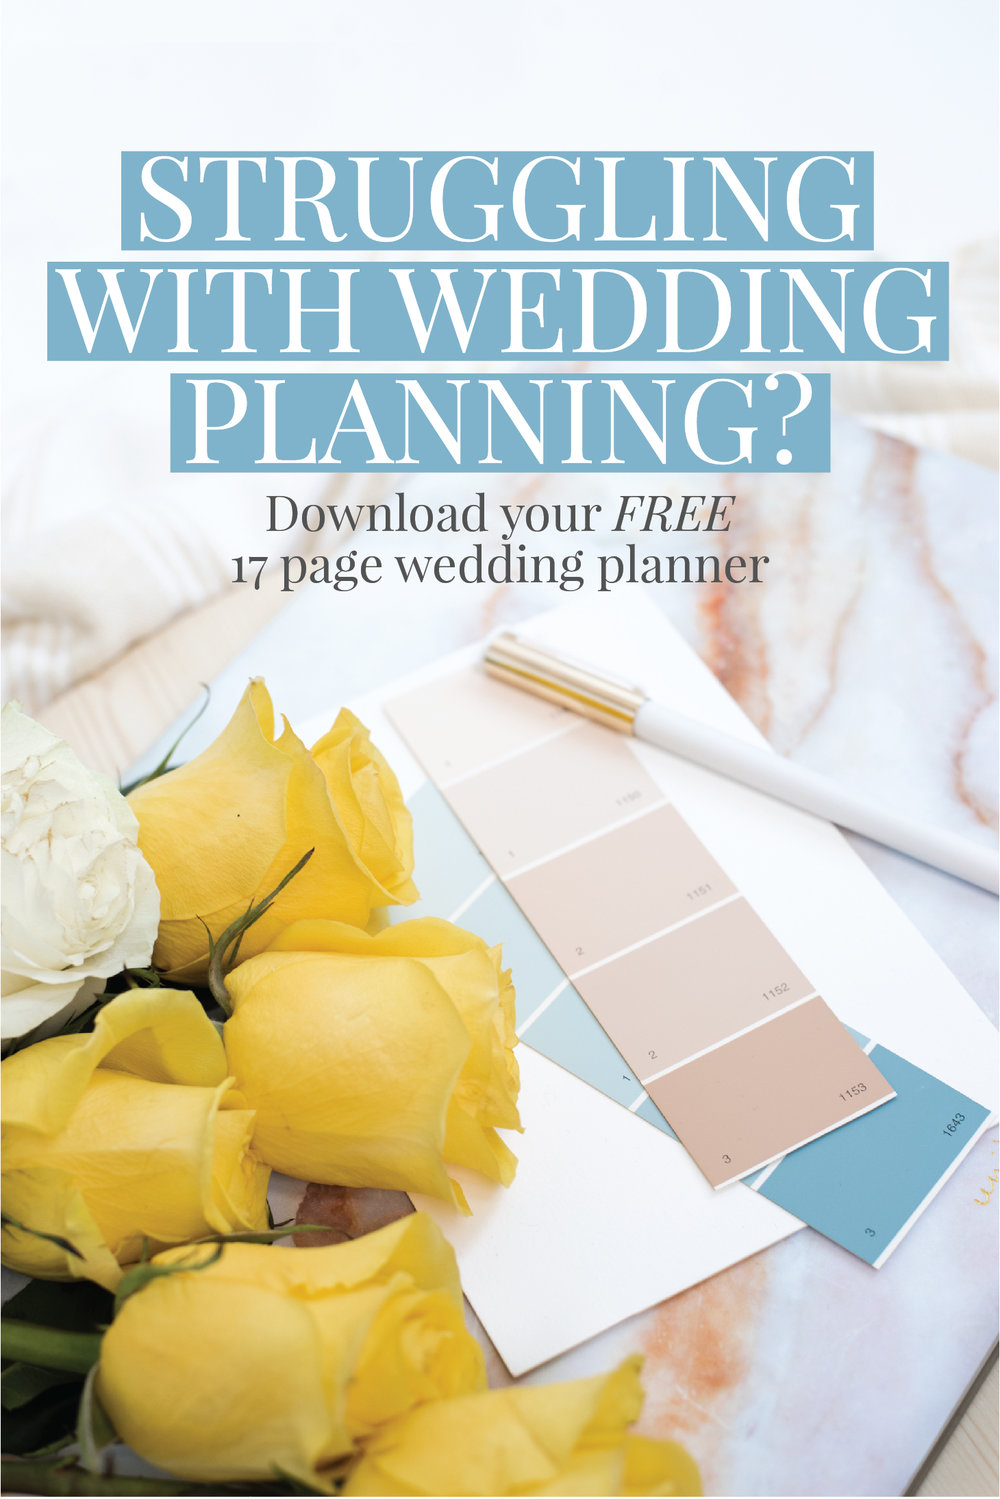 Struggling-with-wedding-planning-01.jpg